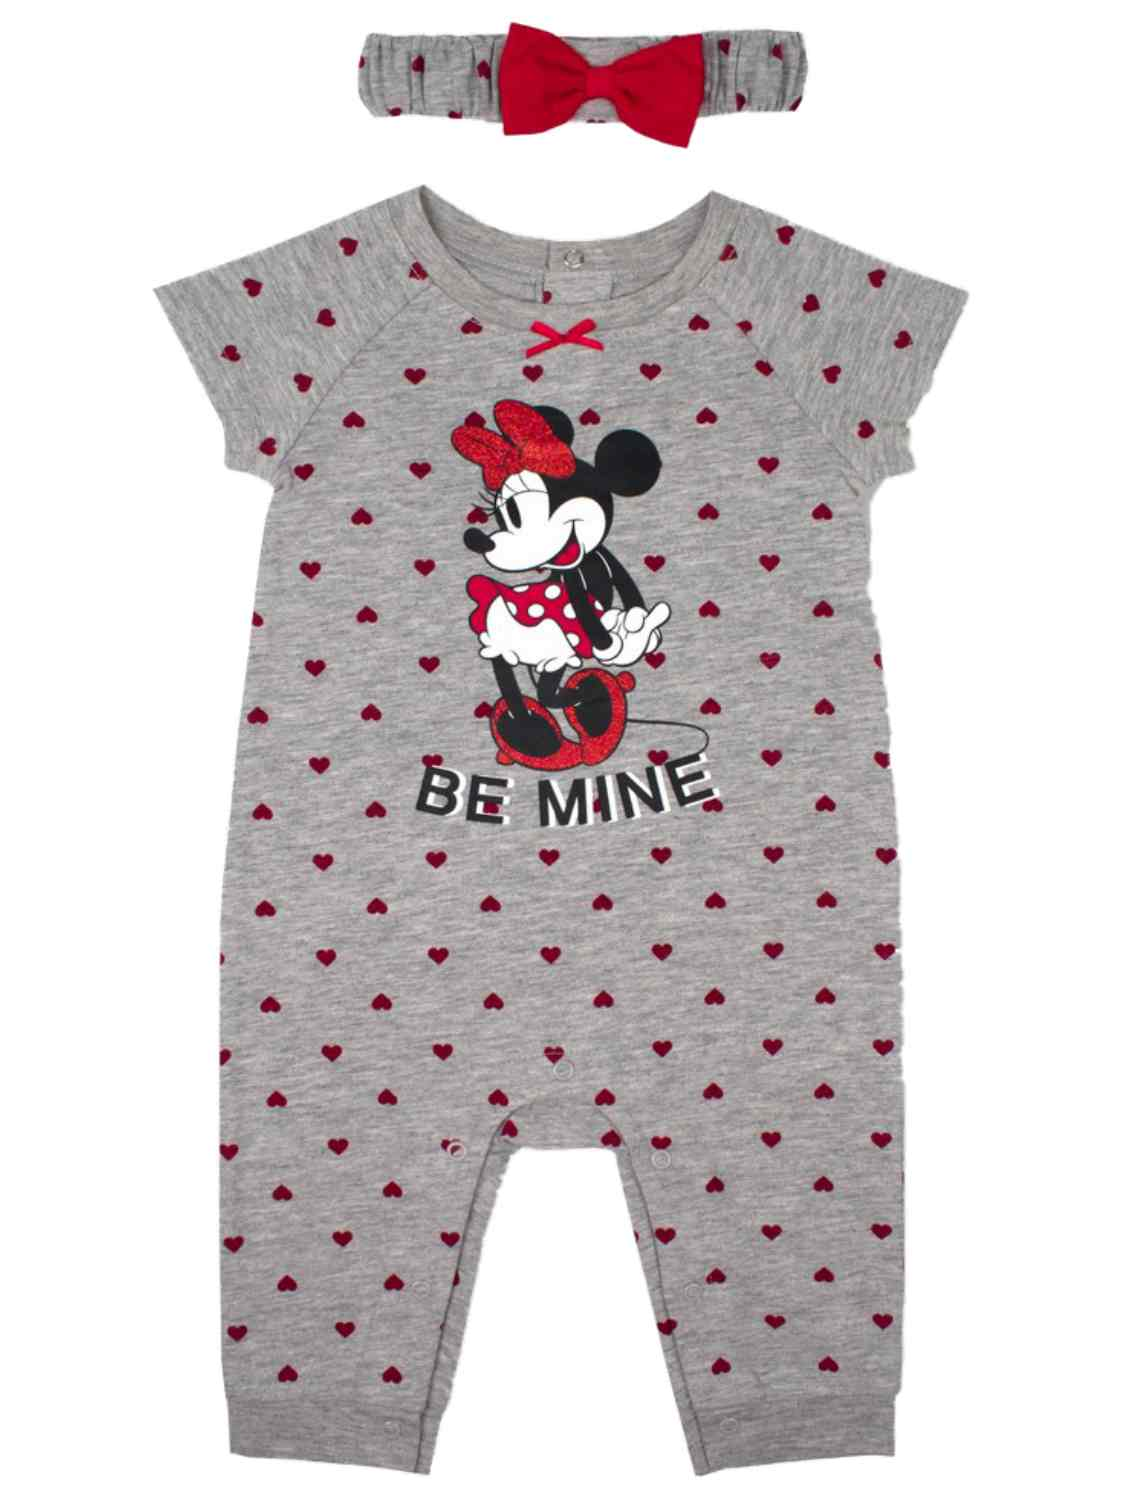 DISNEY BAMBI PURPLE 3 PIECE OUTFIT SIZE NB 3 6 9 12 18 MONTHS NEW!